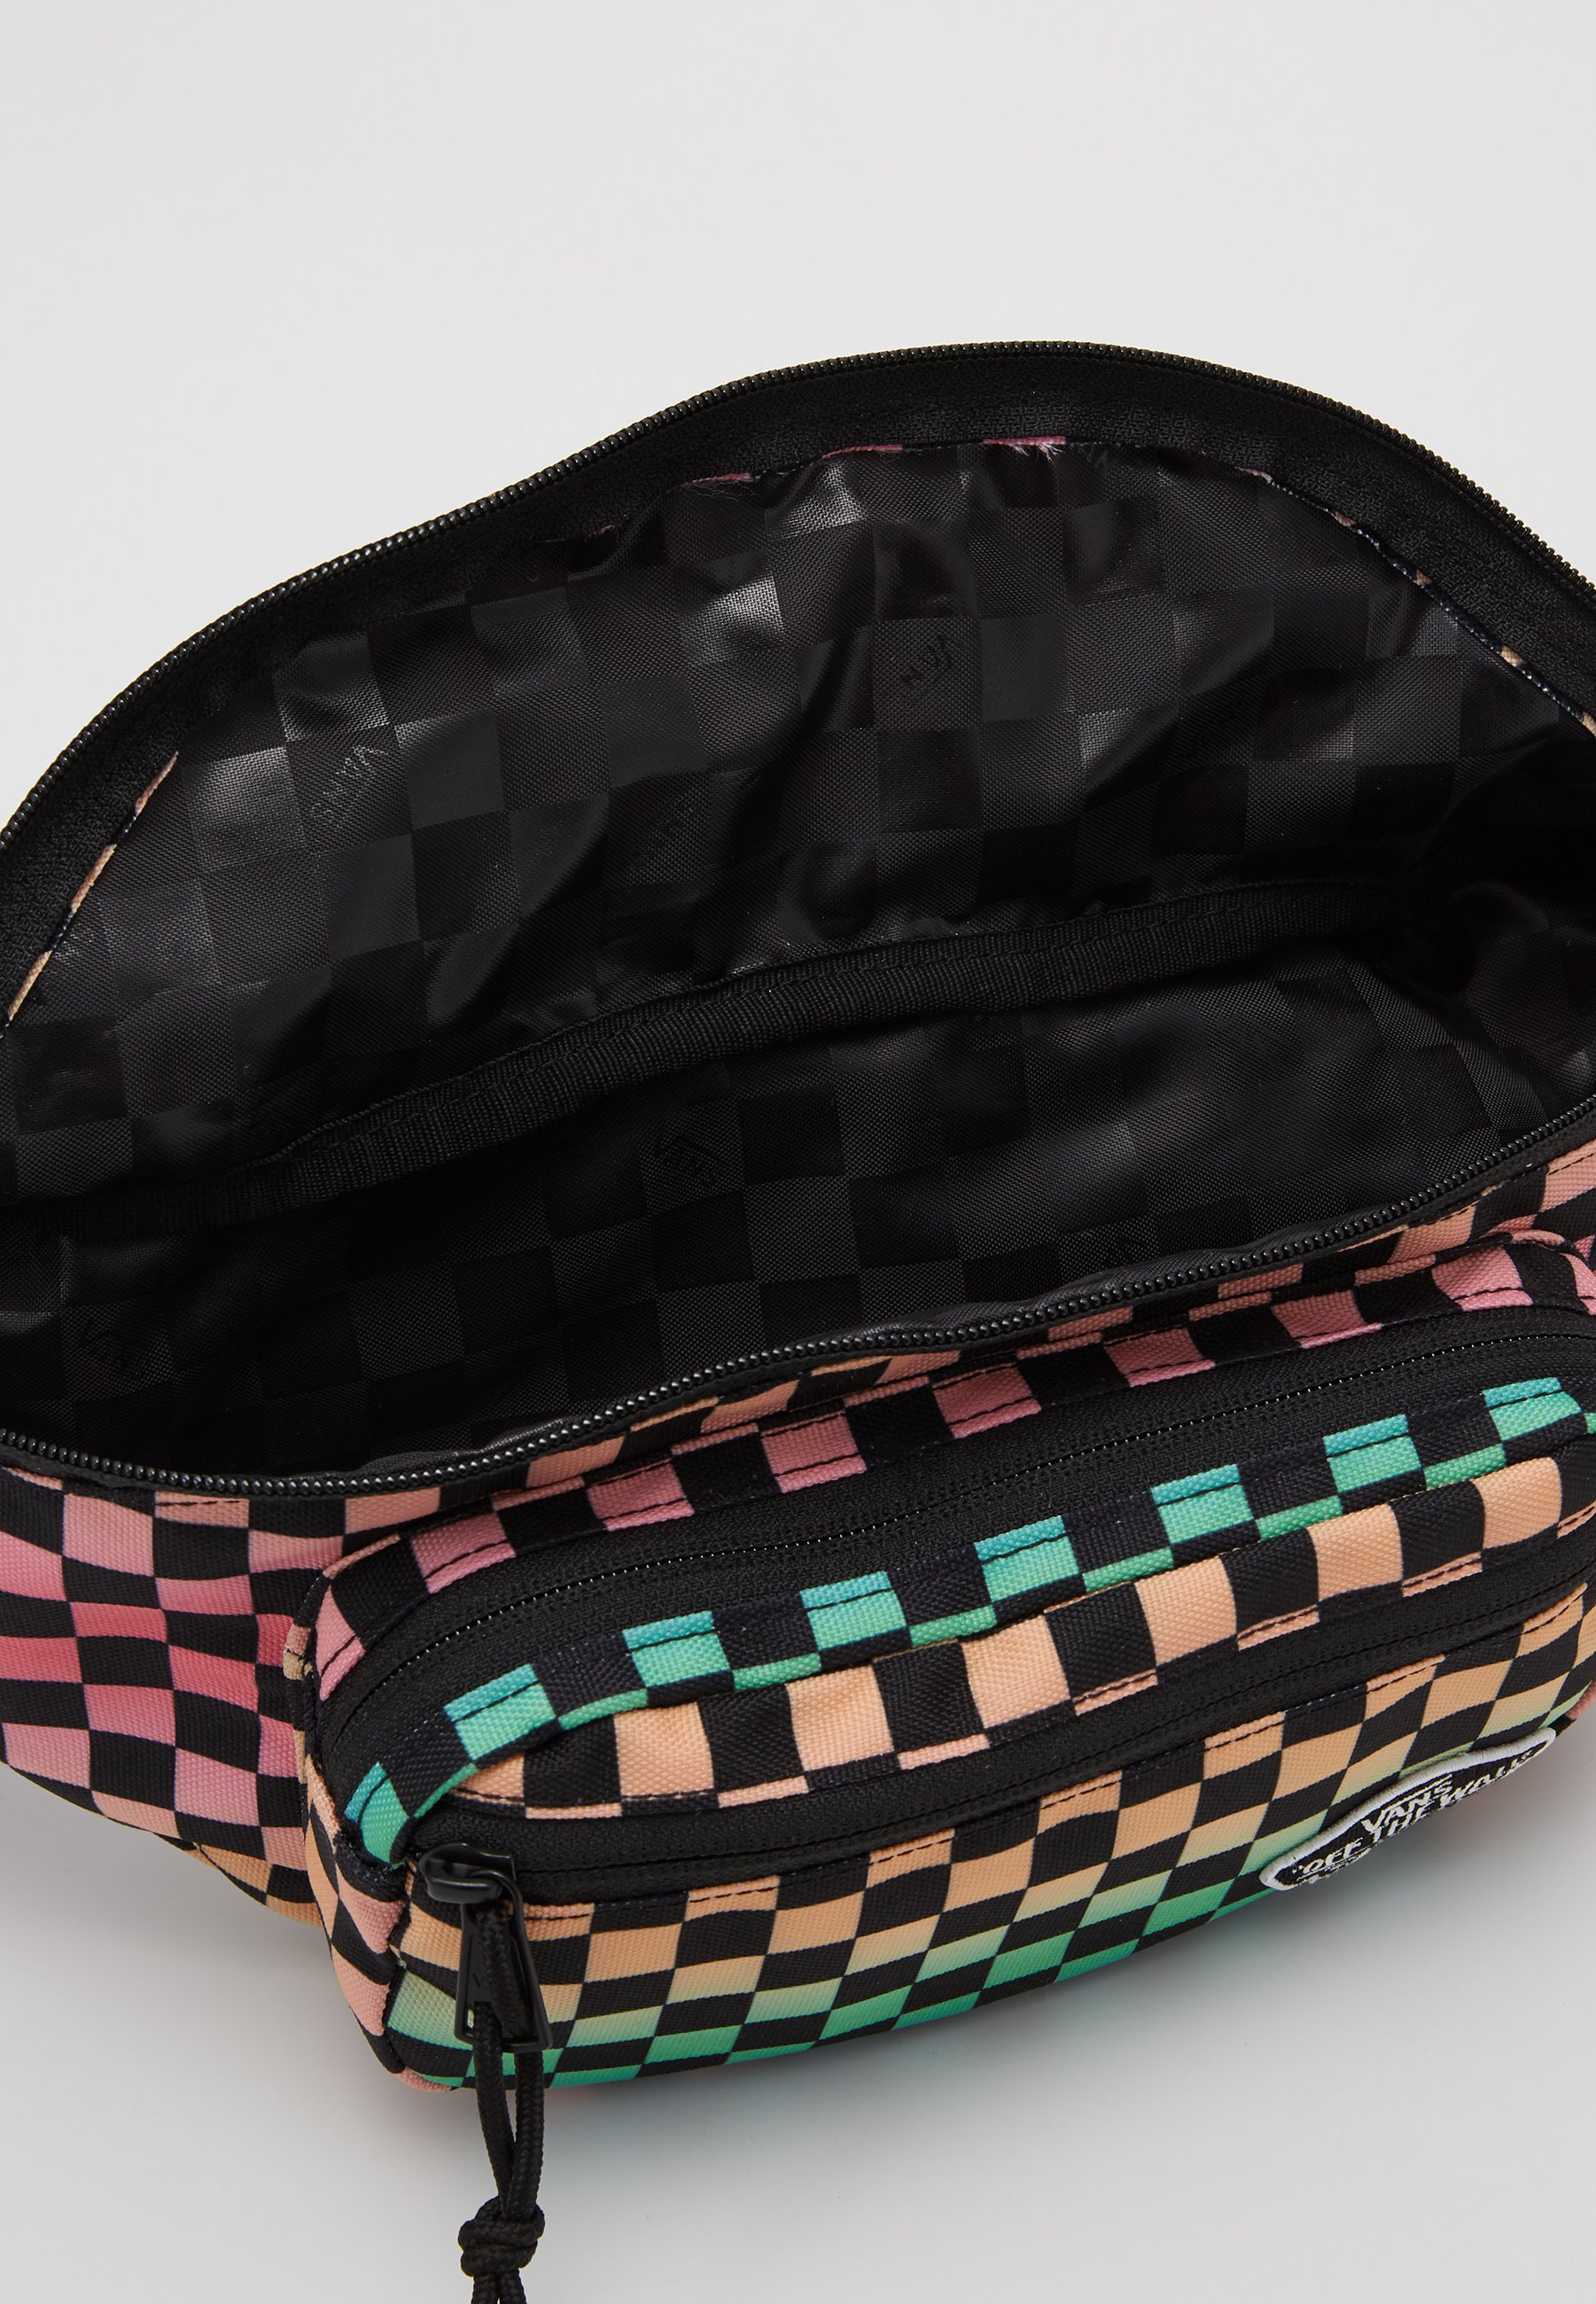 Vans Street Ready Waist Pack - Saszetka Nerka Multi-coloured